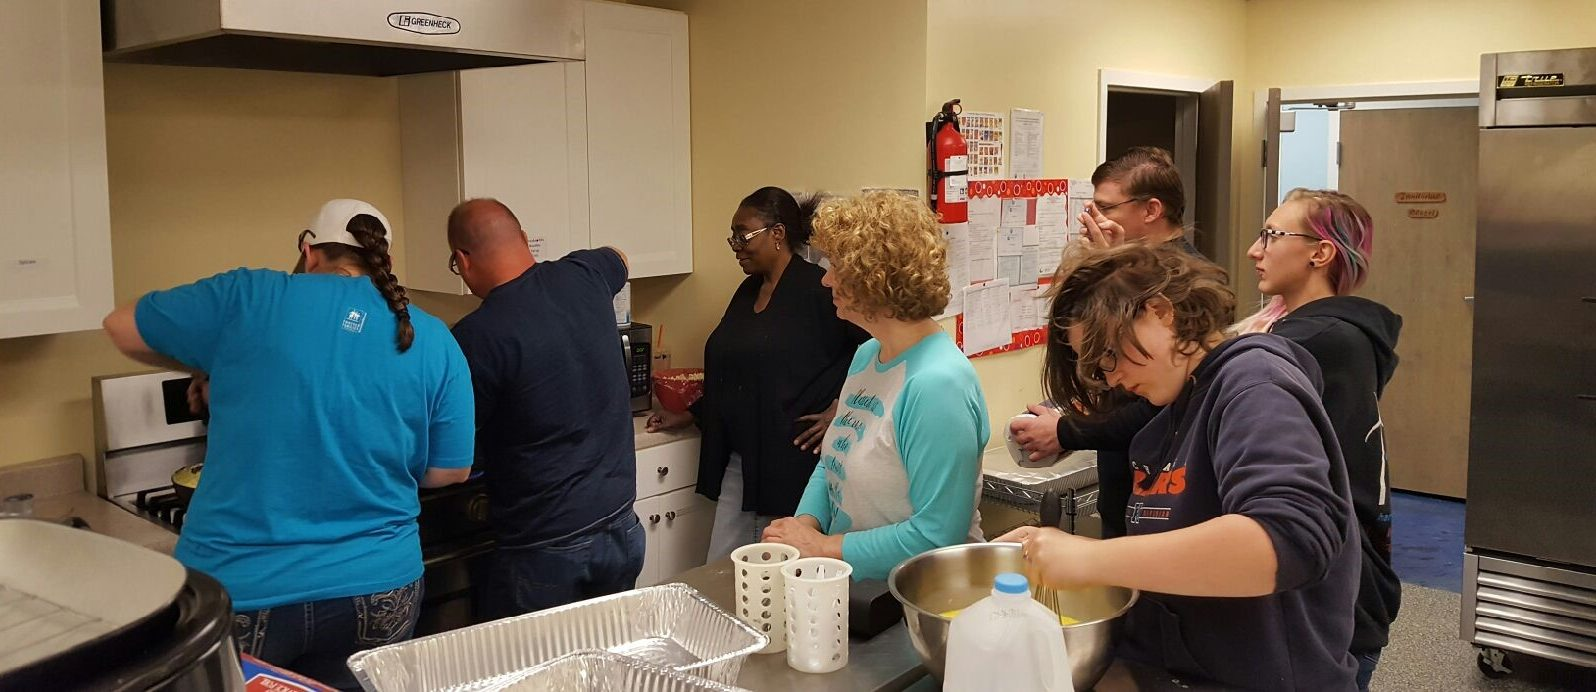 Providign breakfast to homeless in the Roseland community of Chicago